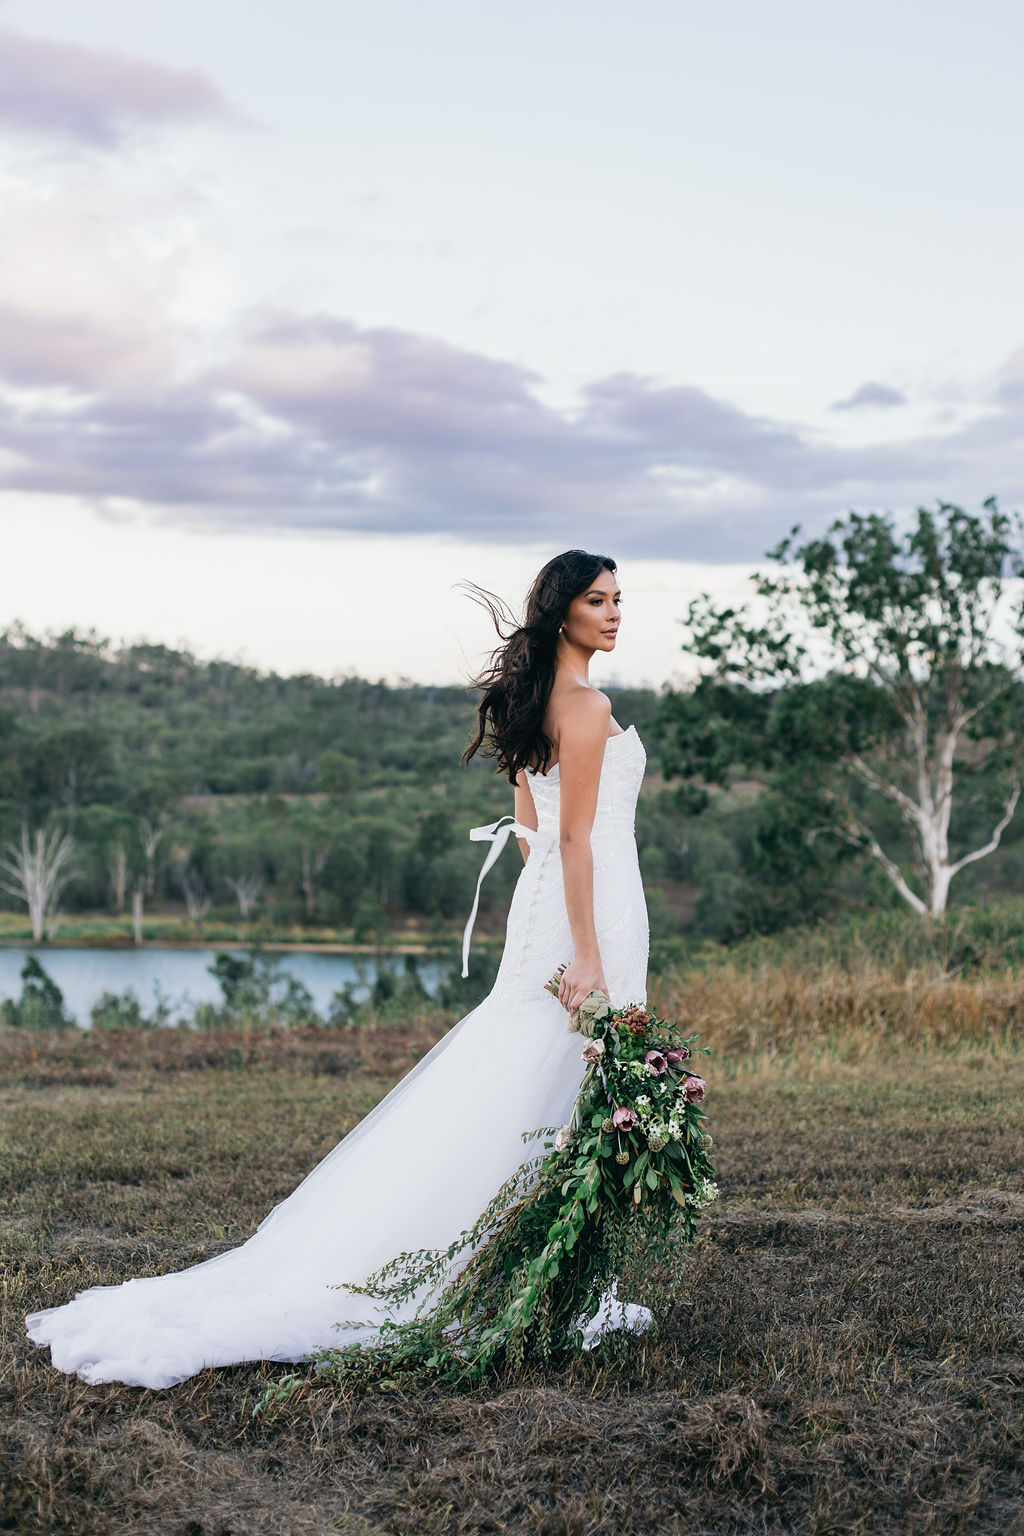 scenic rim bride figtree pictures overflow estate vineyard wedding venue photography australian designer